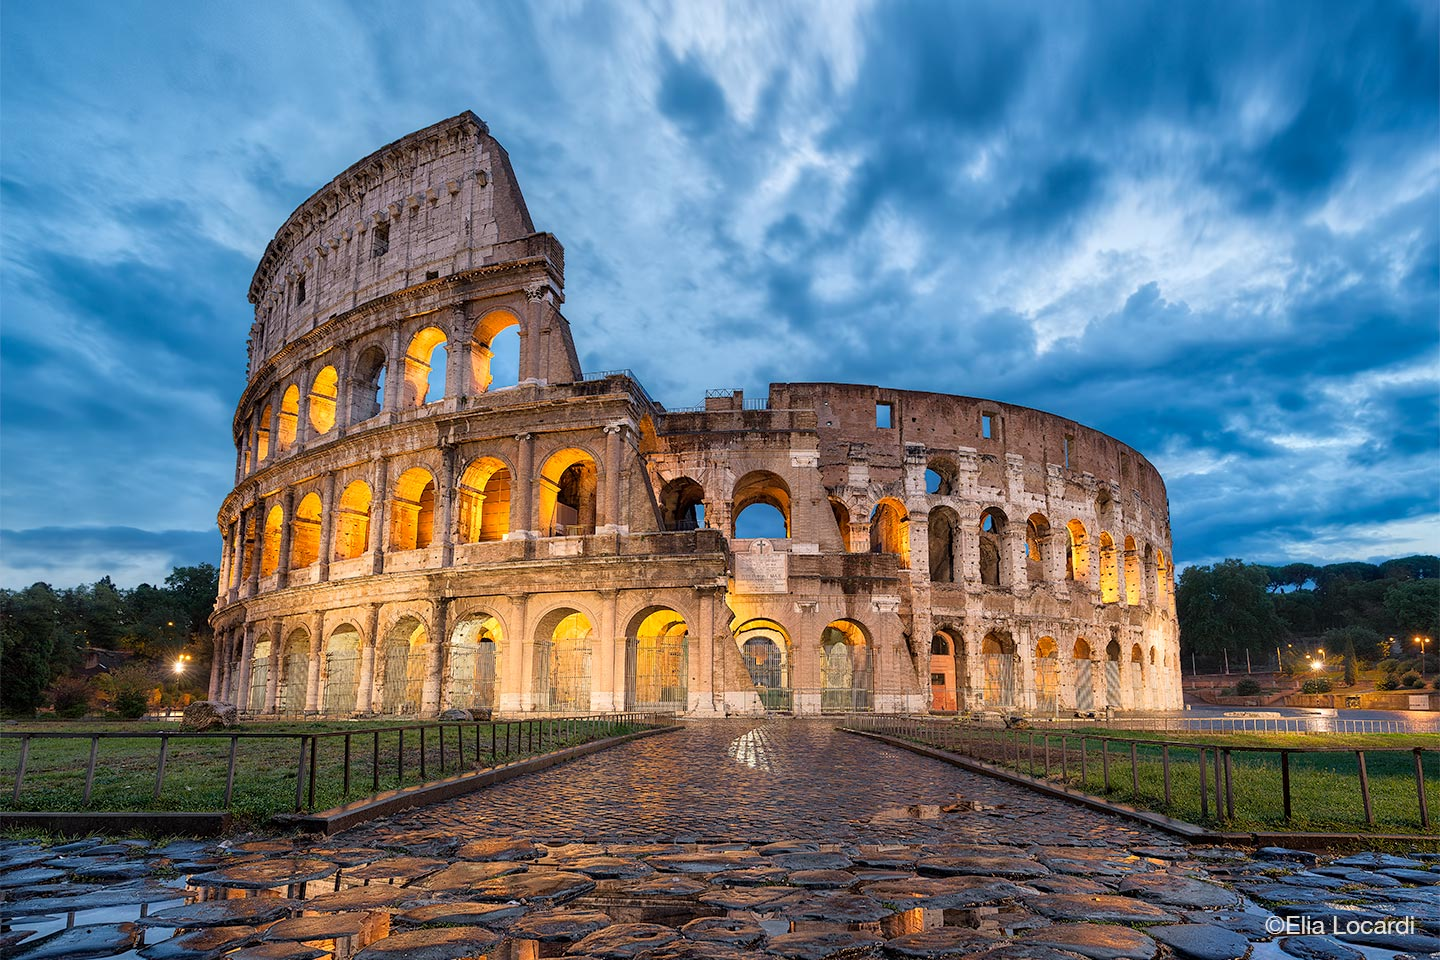 Photo-Tour-Leader-Elia-Locardi-Whispers-From-The-Past-Rome-Italy